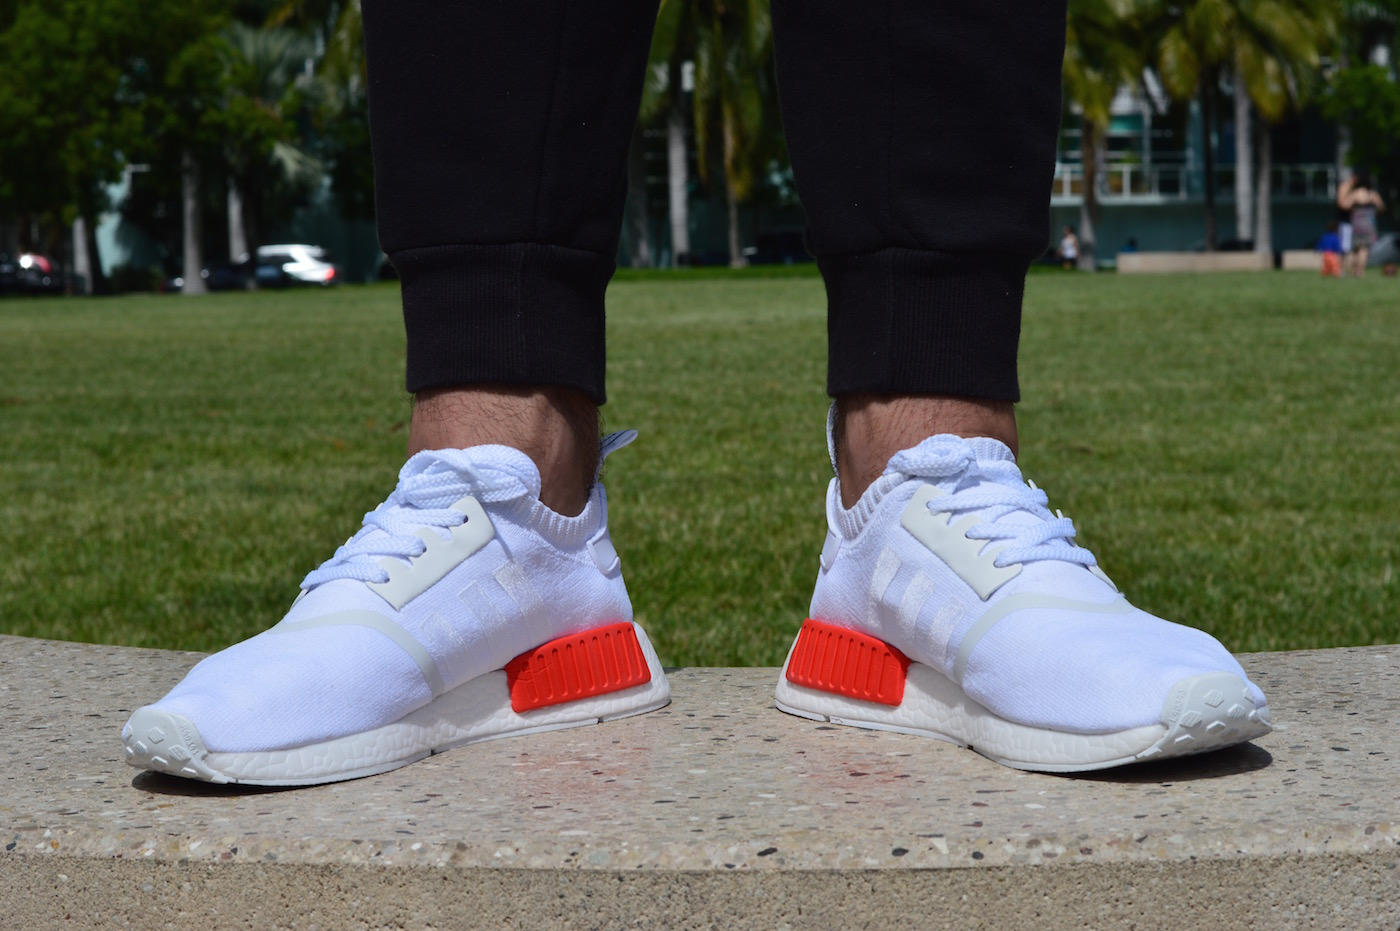 adidas NMD R1 Primeknit On Feet Inner White Red Blue